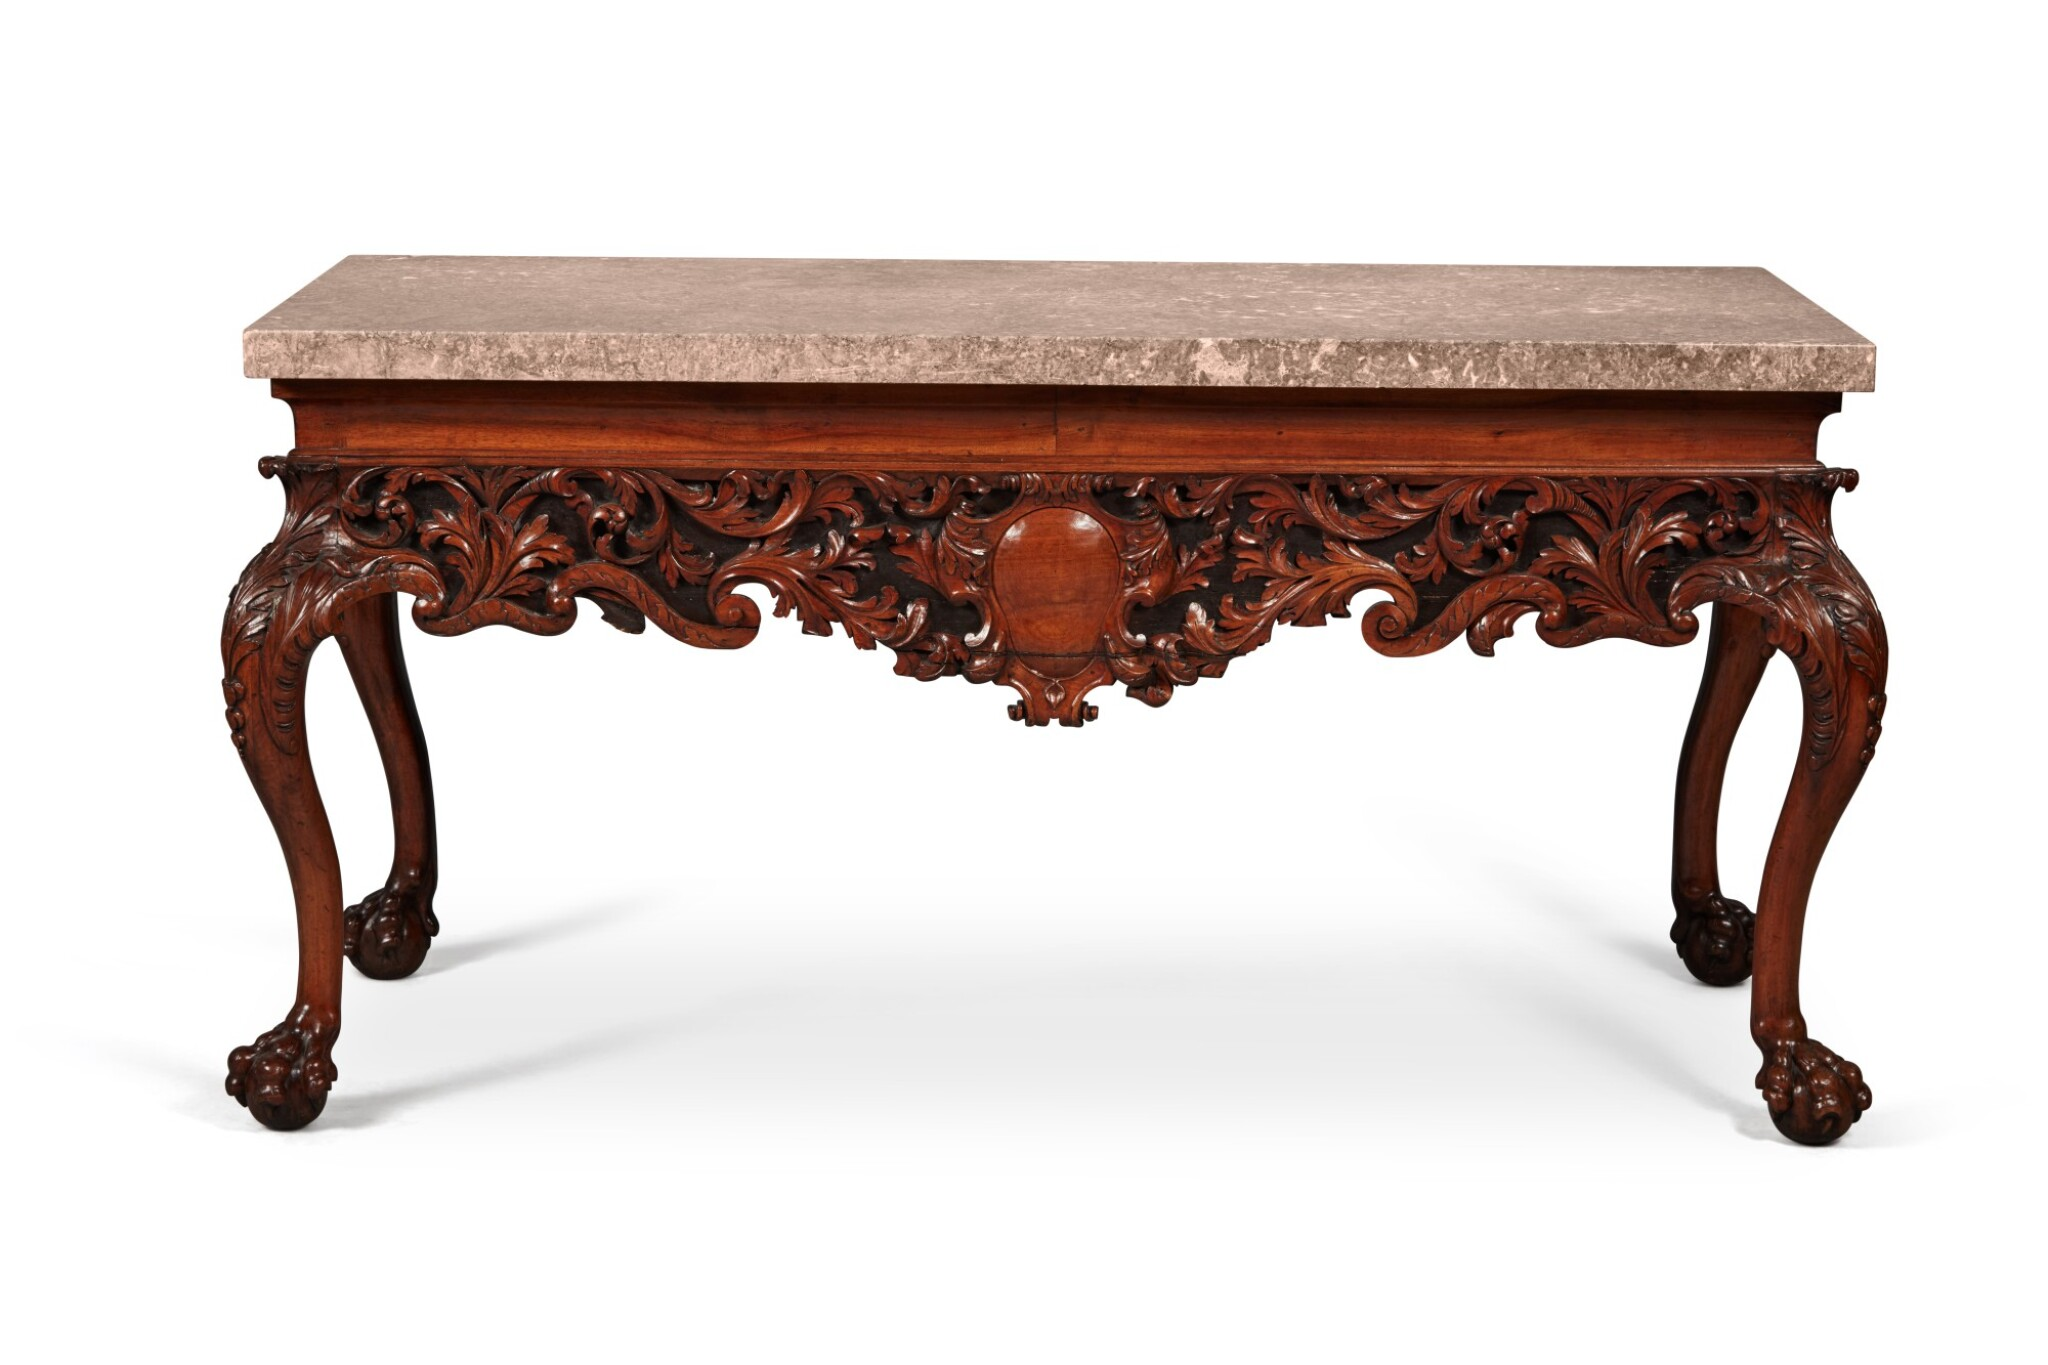 View full screen - View 1 of Lot 111. An Irish George IV Carved Walnut Side Table, Circa 1820.